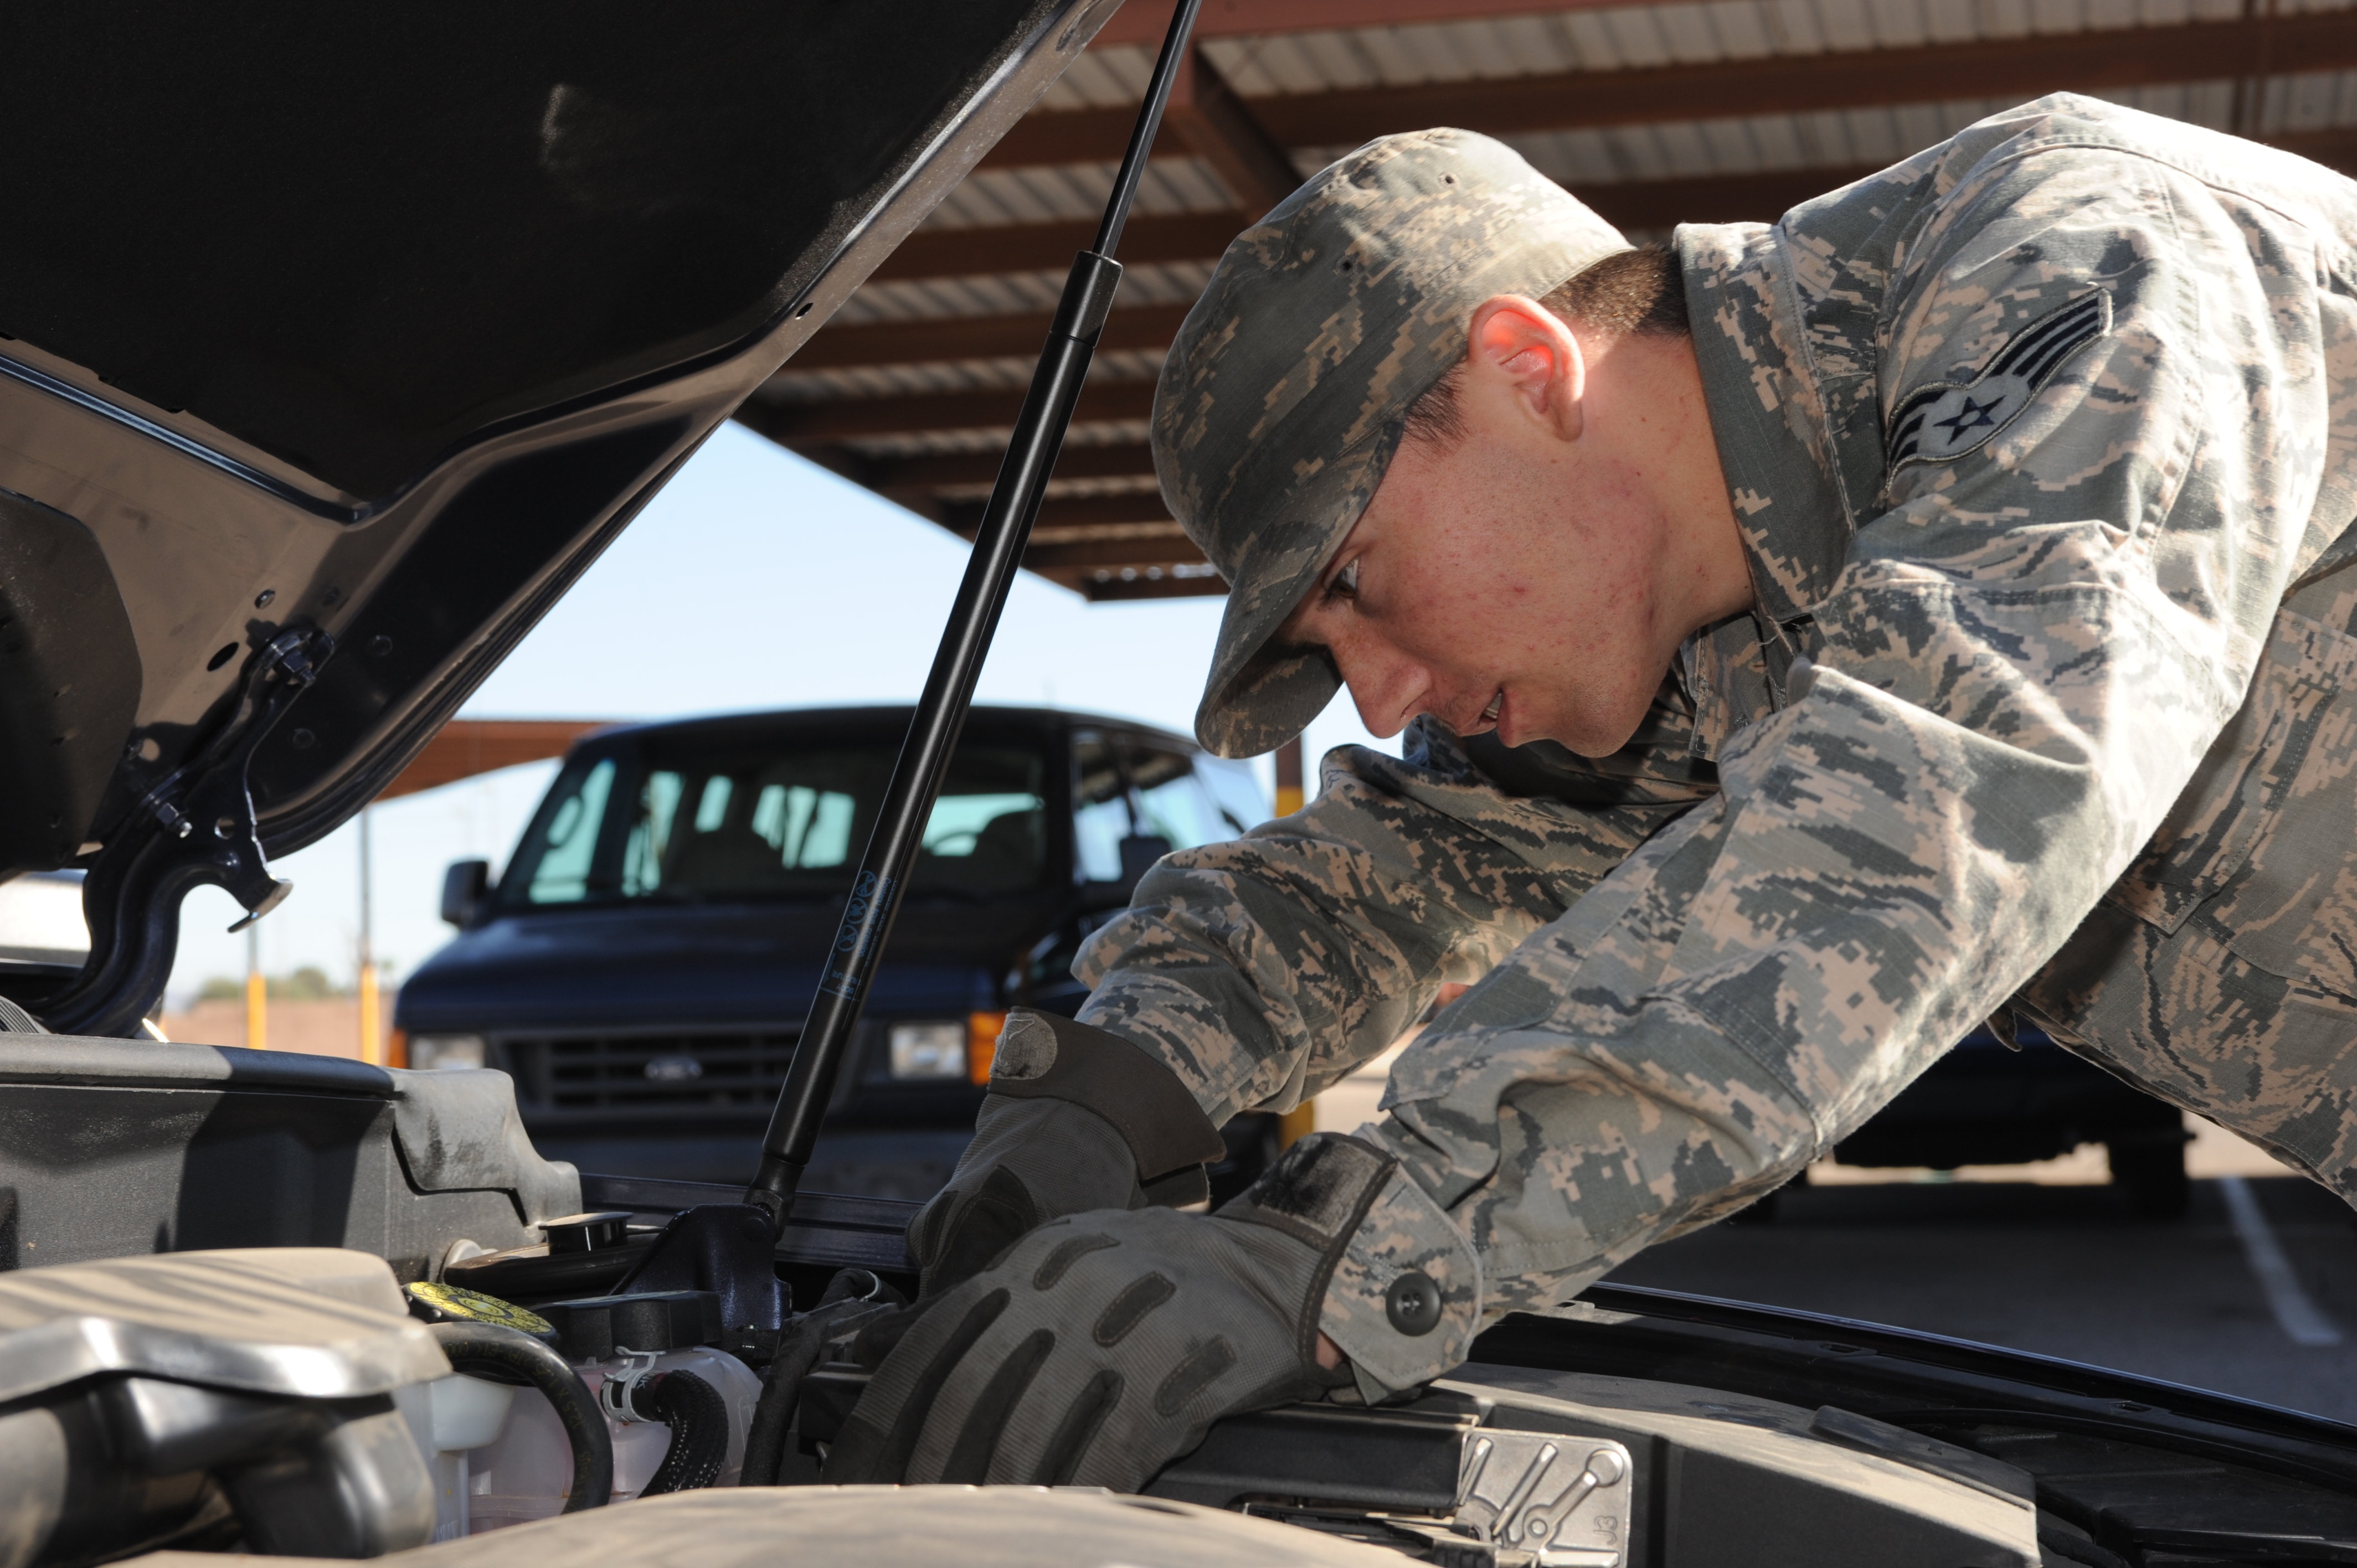 355th LRS: Vehicle Operations > Davis-Monthan Air Force Base ...